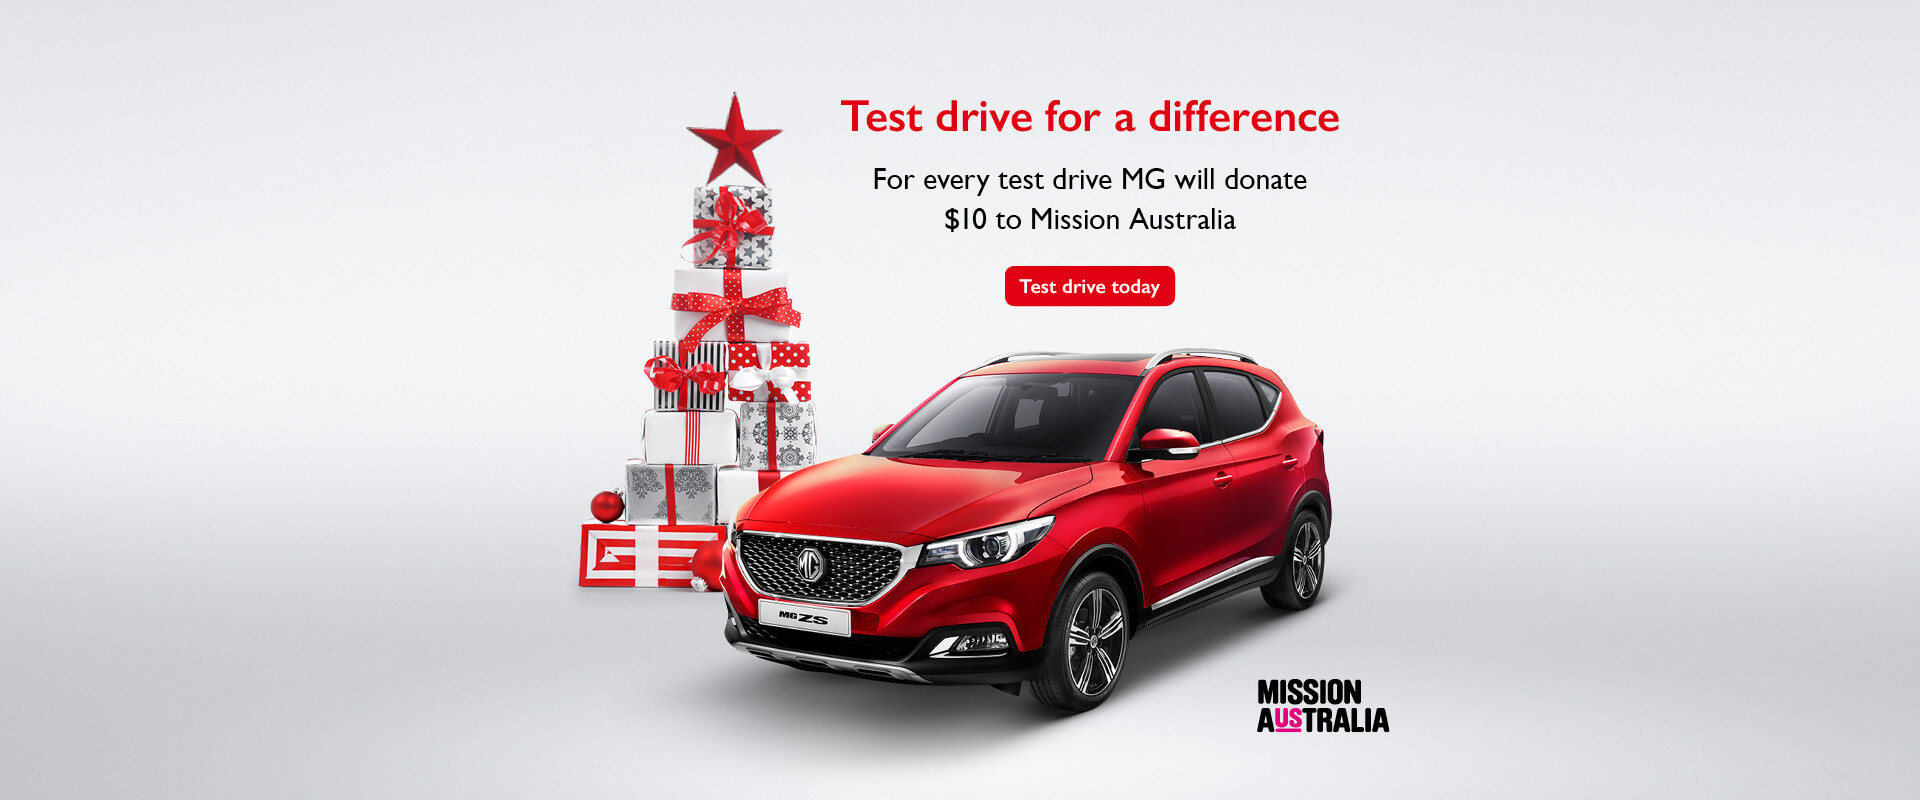 Test Drive for a Difference this December